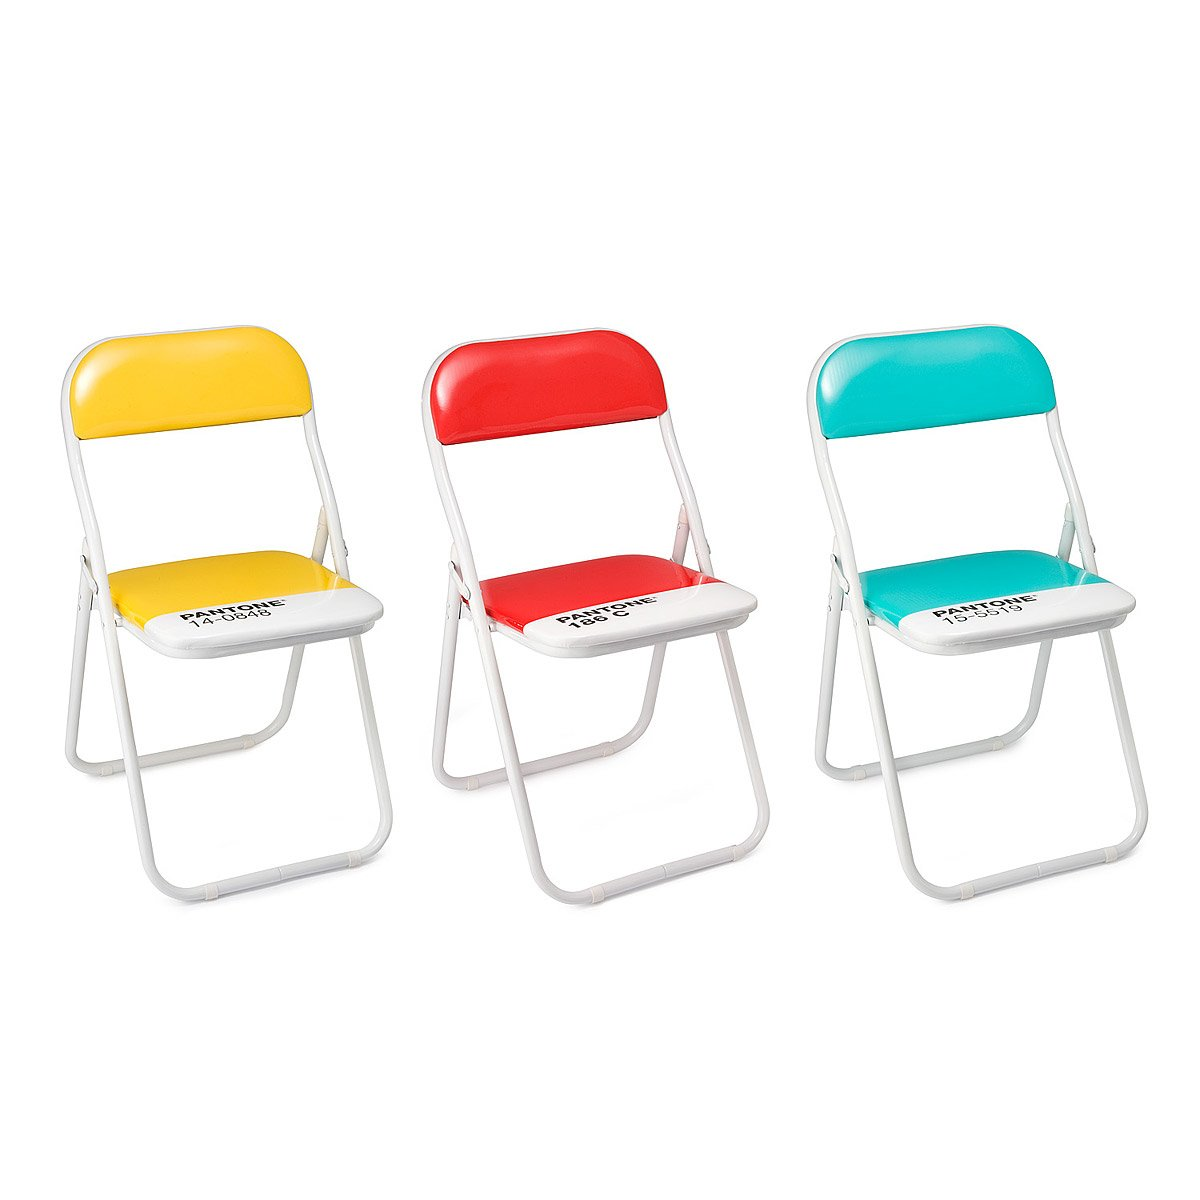 Pantone Chair Pantone Folding Chairs Seating Entertaining Home Decor